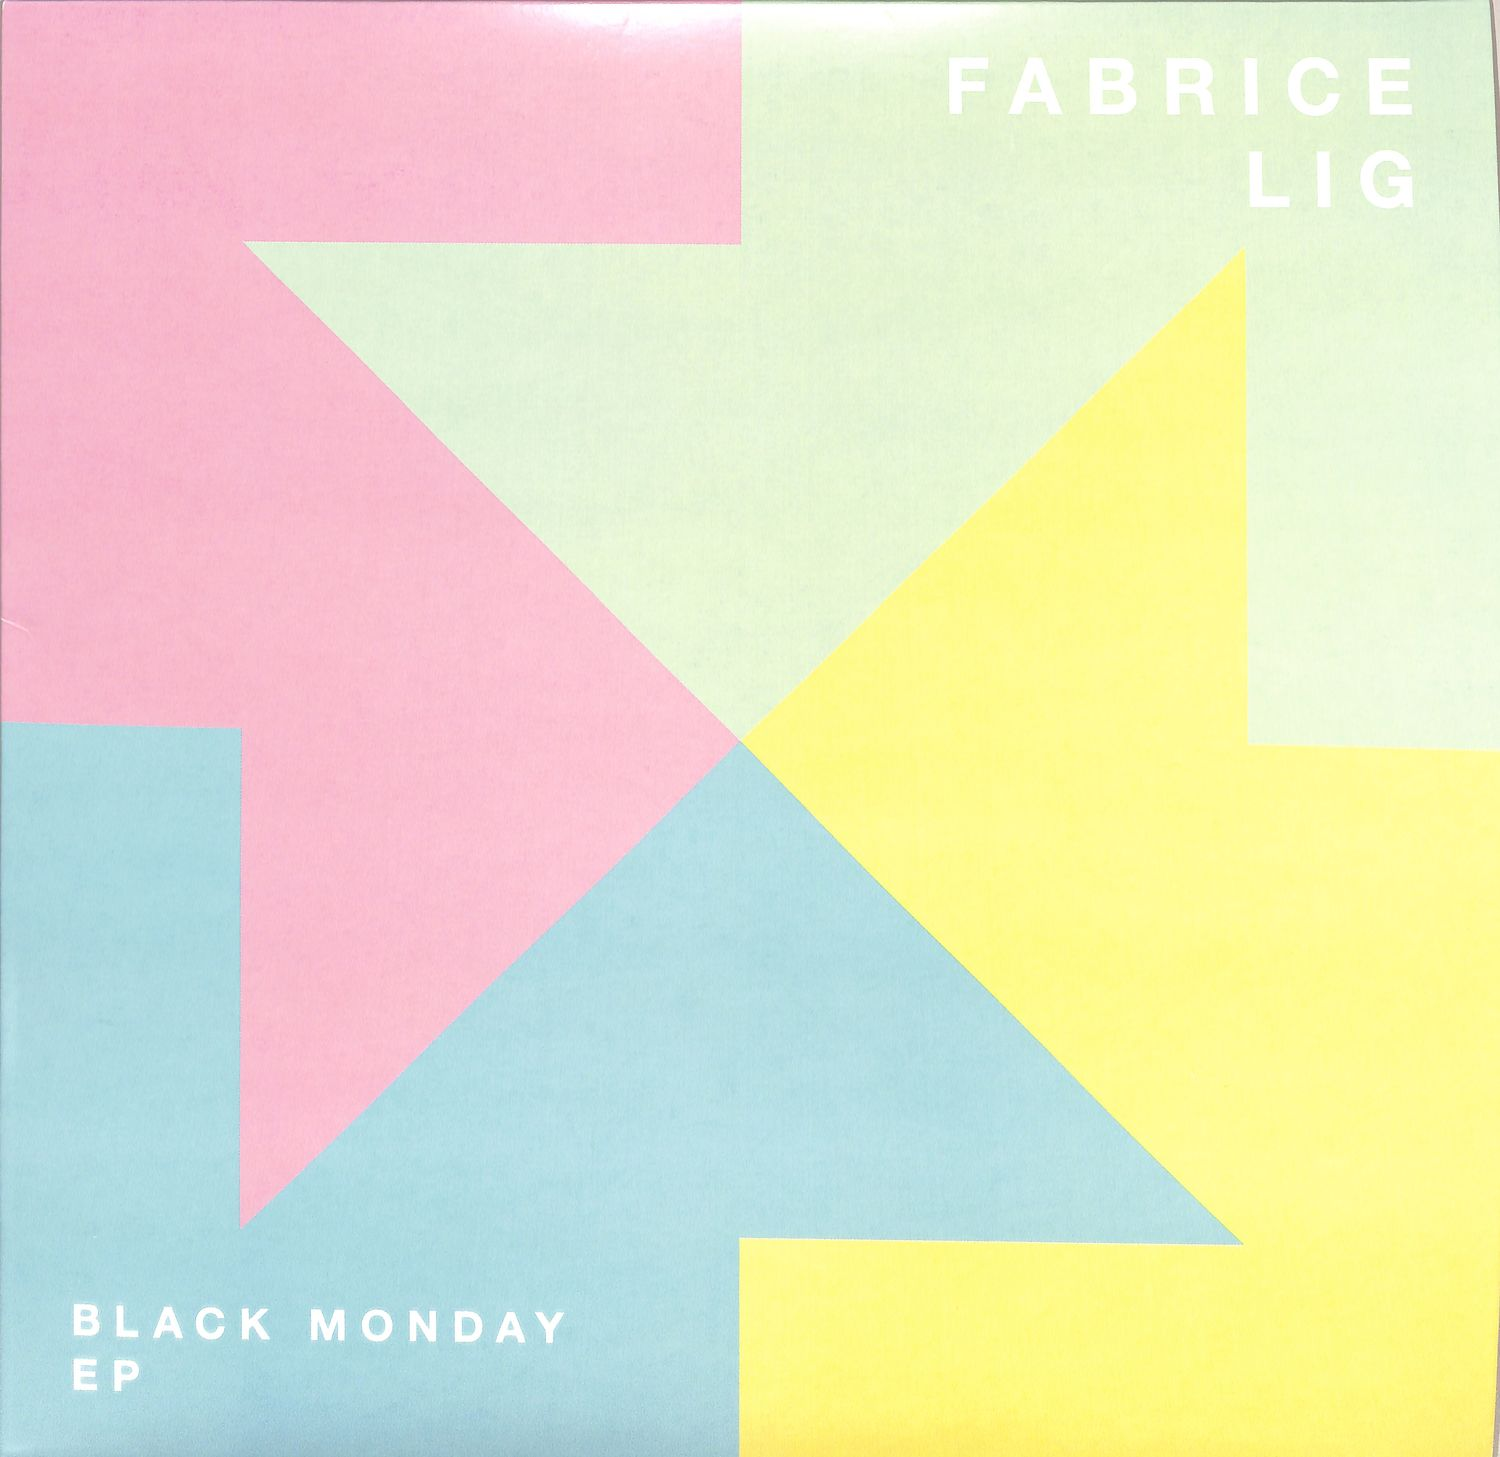 Fabrice Lig - BLACK MONDAY EP